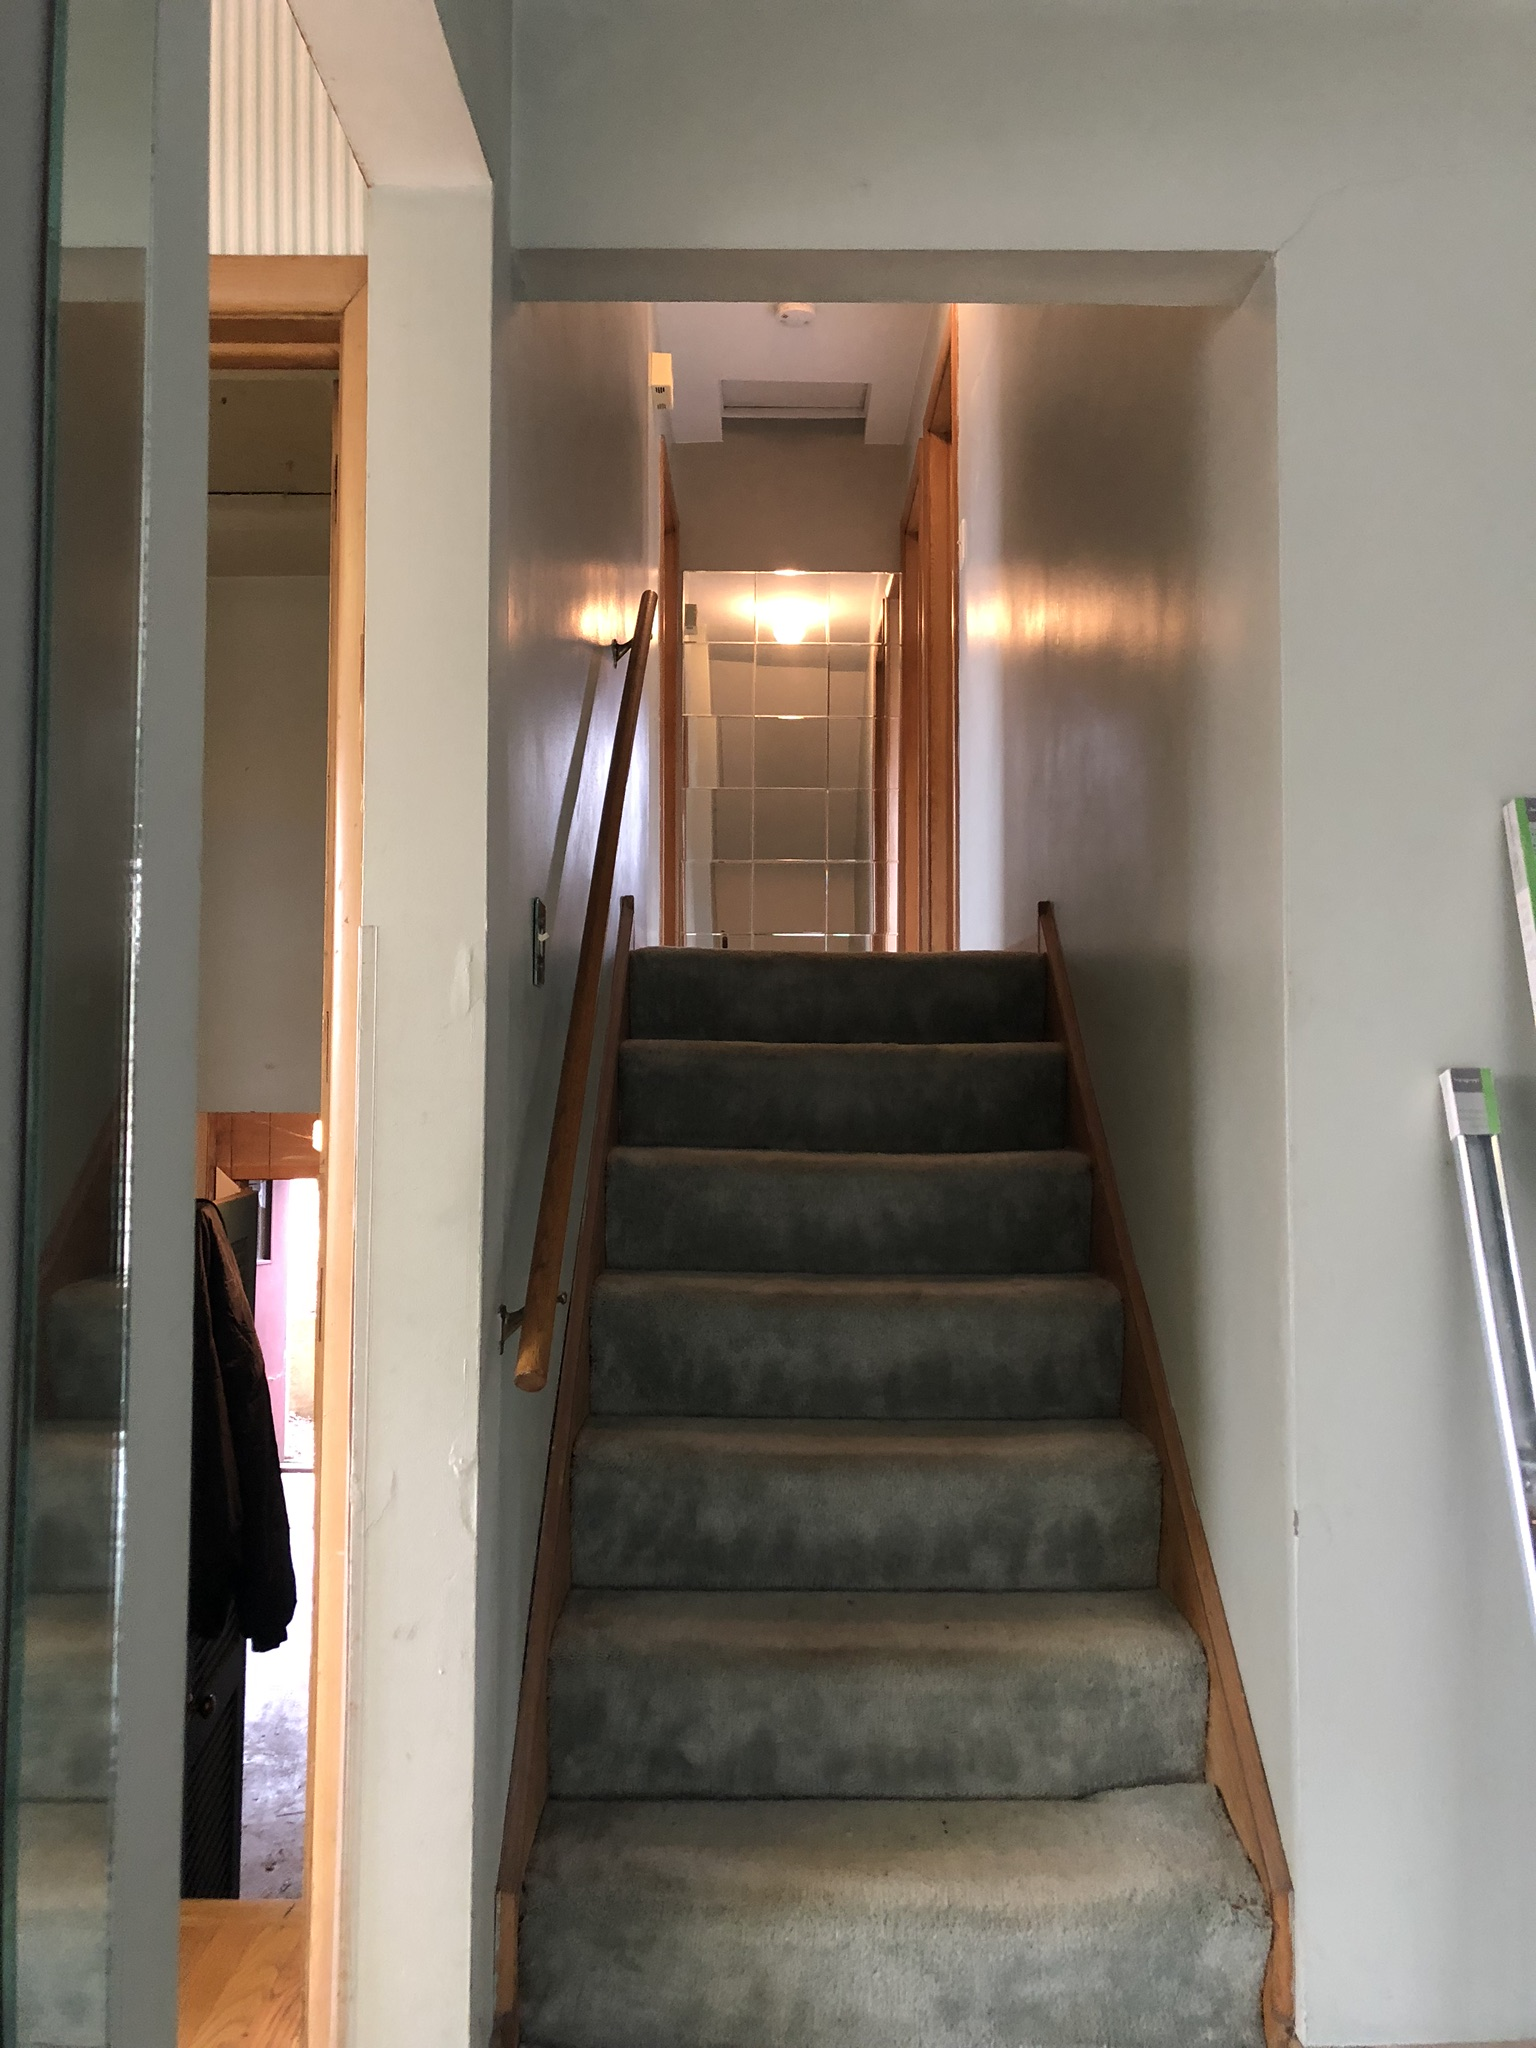 3 Bedroom 2 Bathroom Single Family Home Ronovation | Before | Equity Twins | Oak Lawn, IL | Chicago, IL| View of Stairs